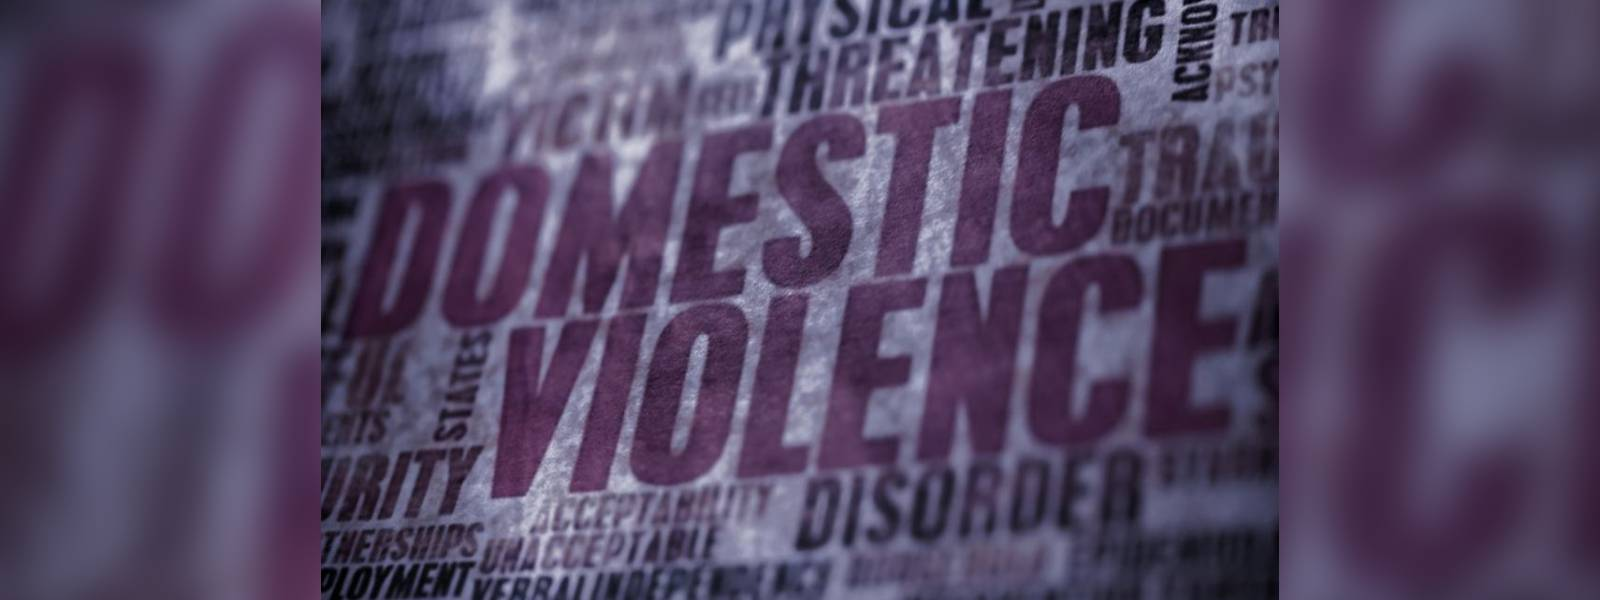 Spike in domestic violence; males vulnerable?